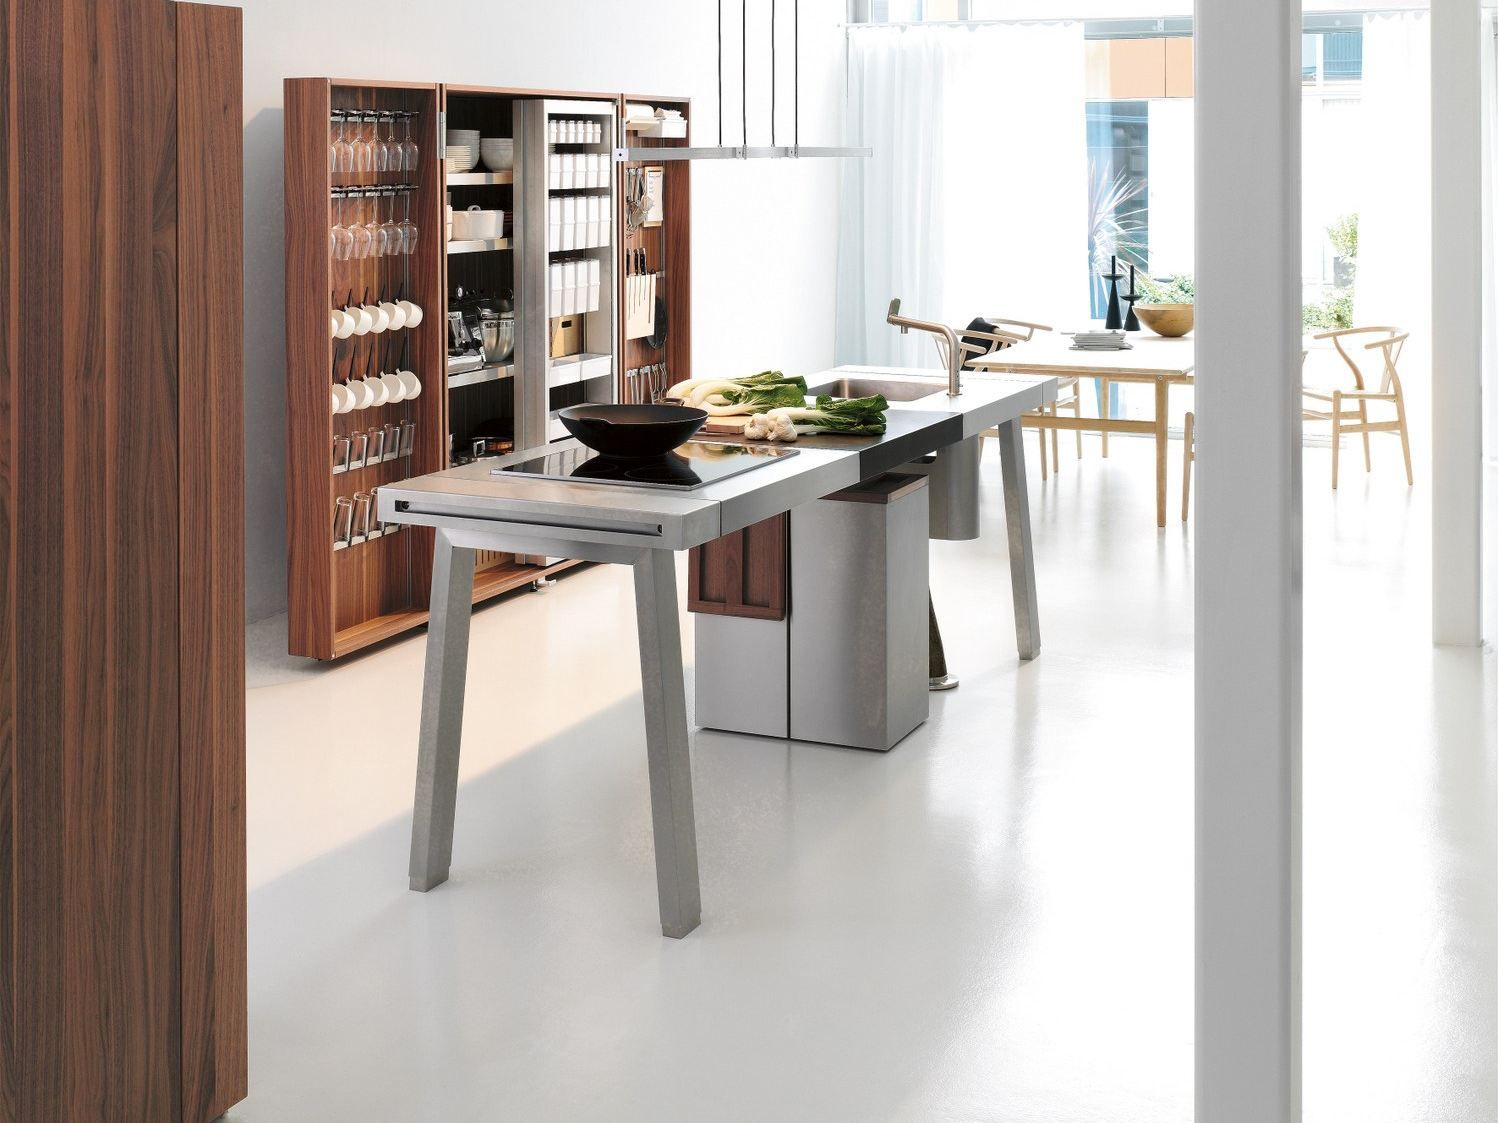 Fitted Kitchen B2 B2 Collection By Bulthaup Design Eoos Kitchen